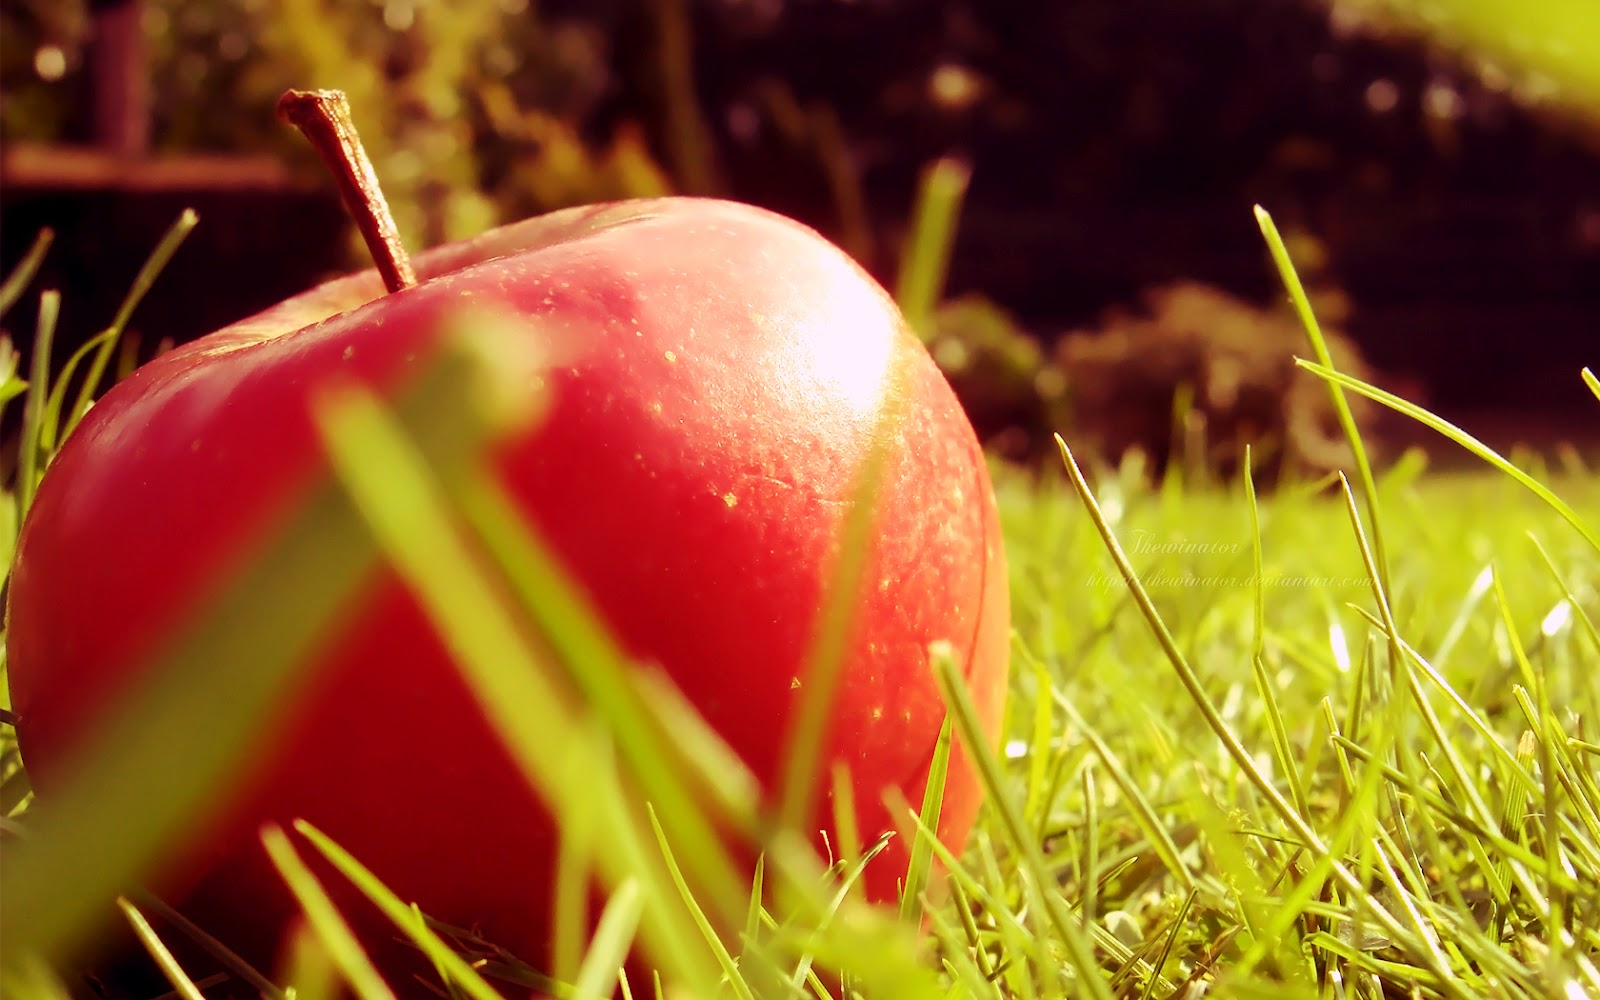 Fall Apples Wallpaper Top 15 Fresh And Beautiful Apple Wallpapers In Hd